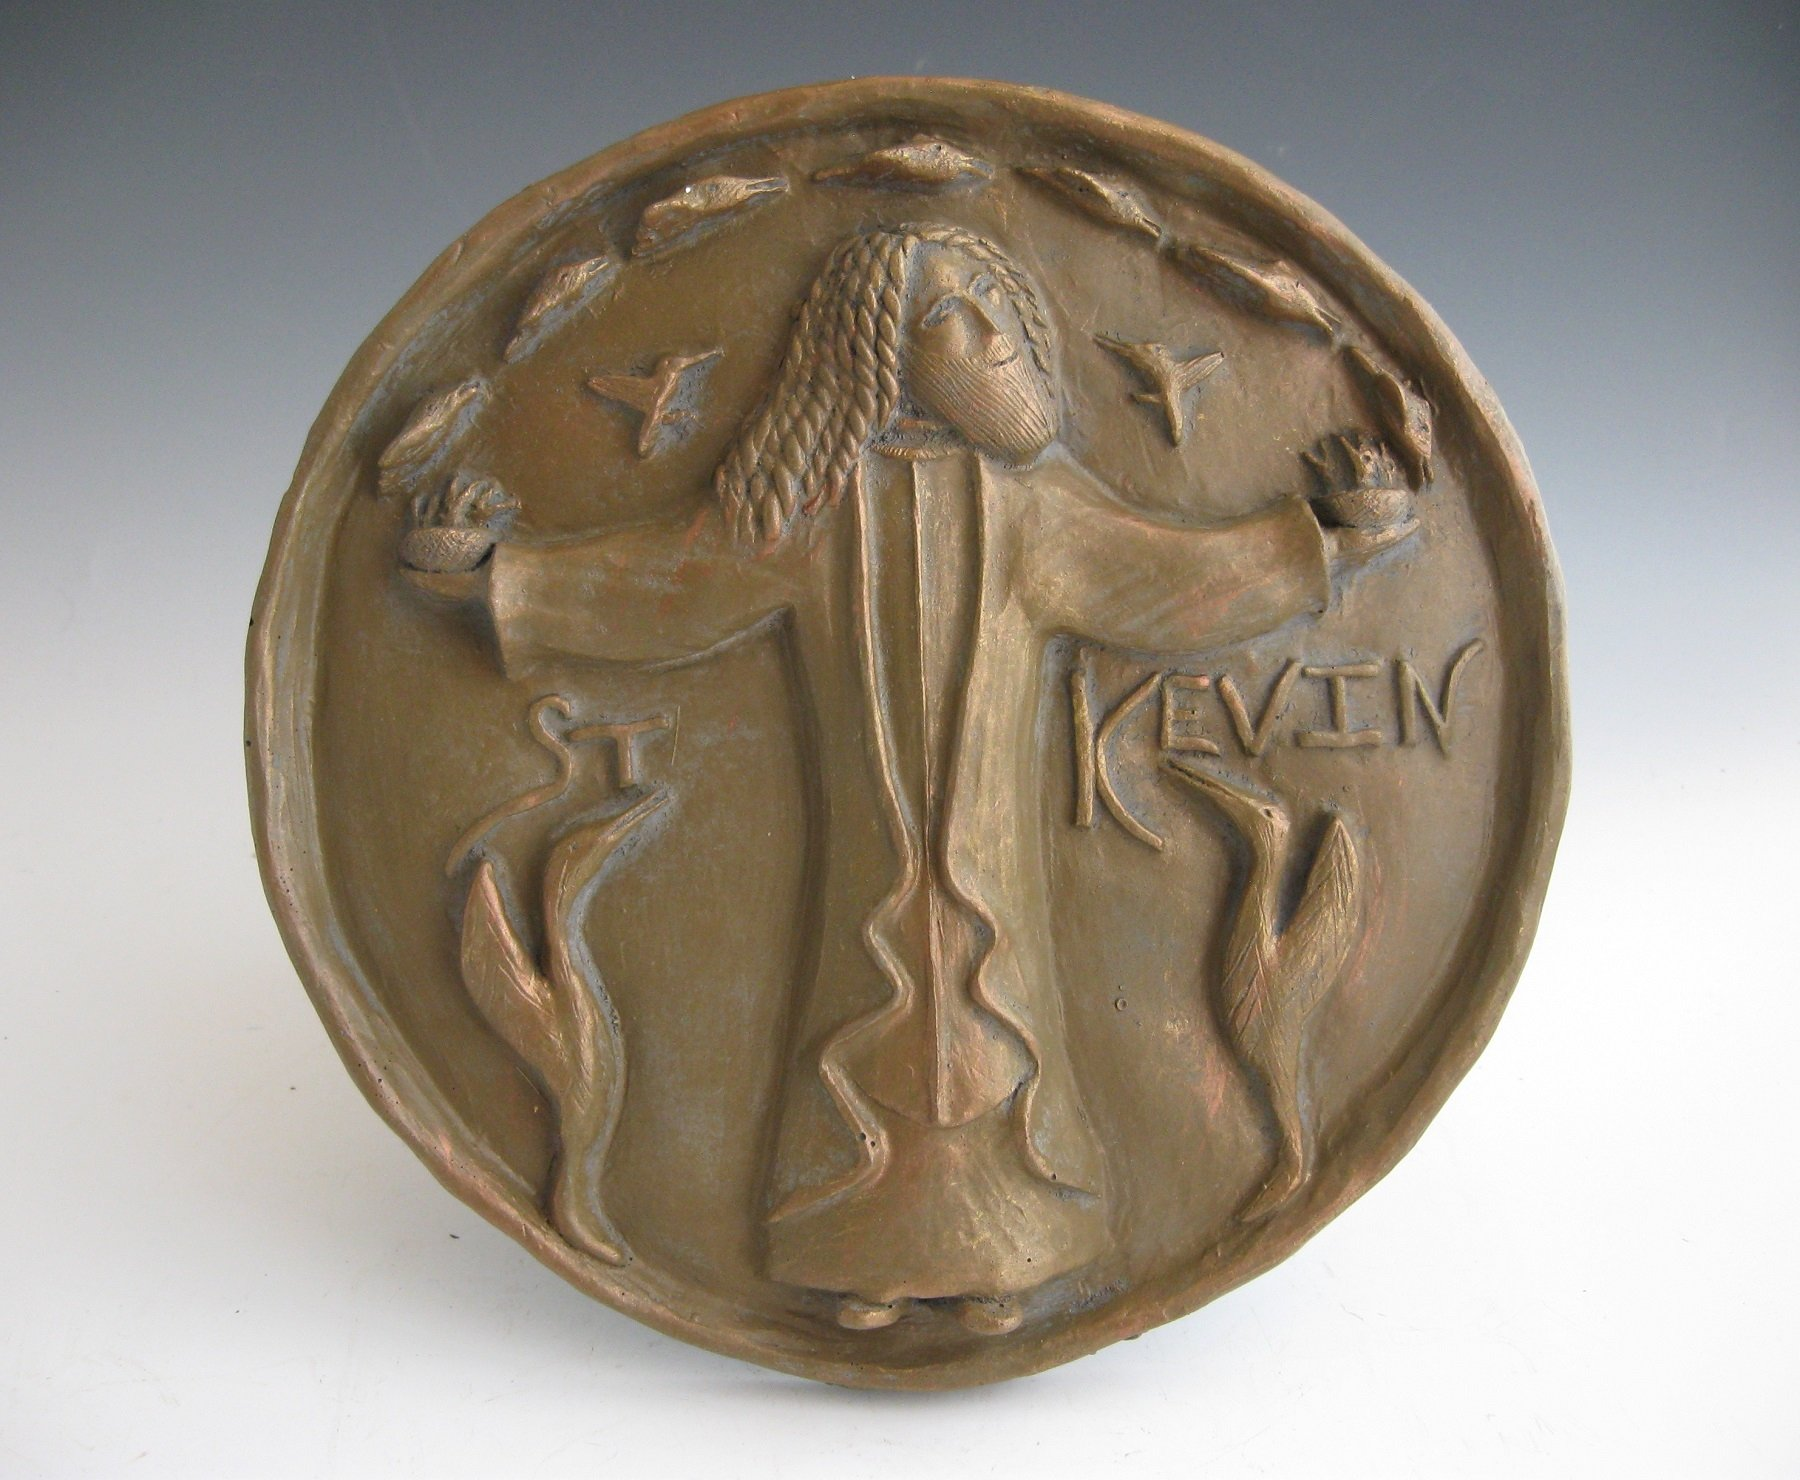 St. Kevin: Patron of Birds, Bird-Lovers, Dublin; Handmade Plaque